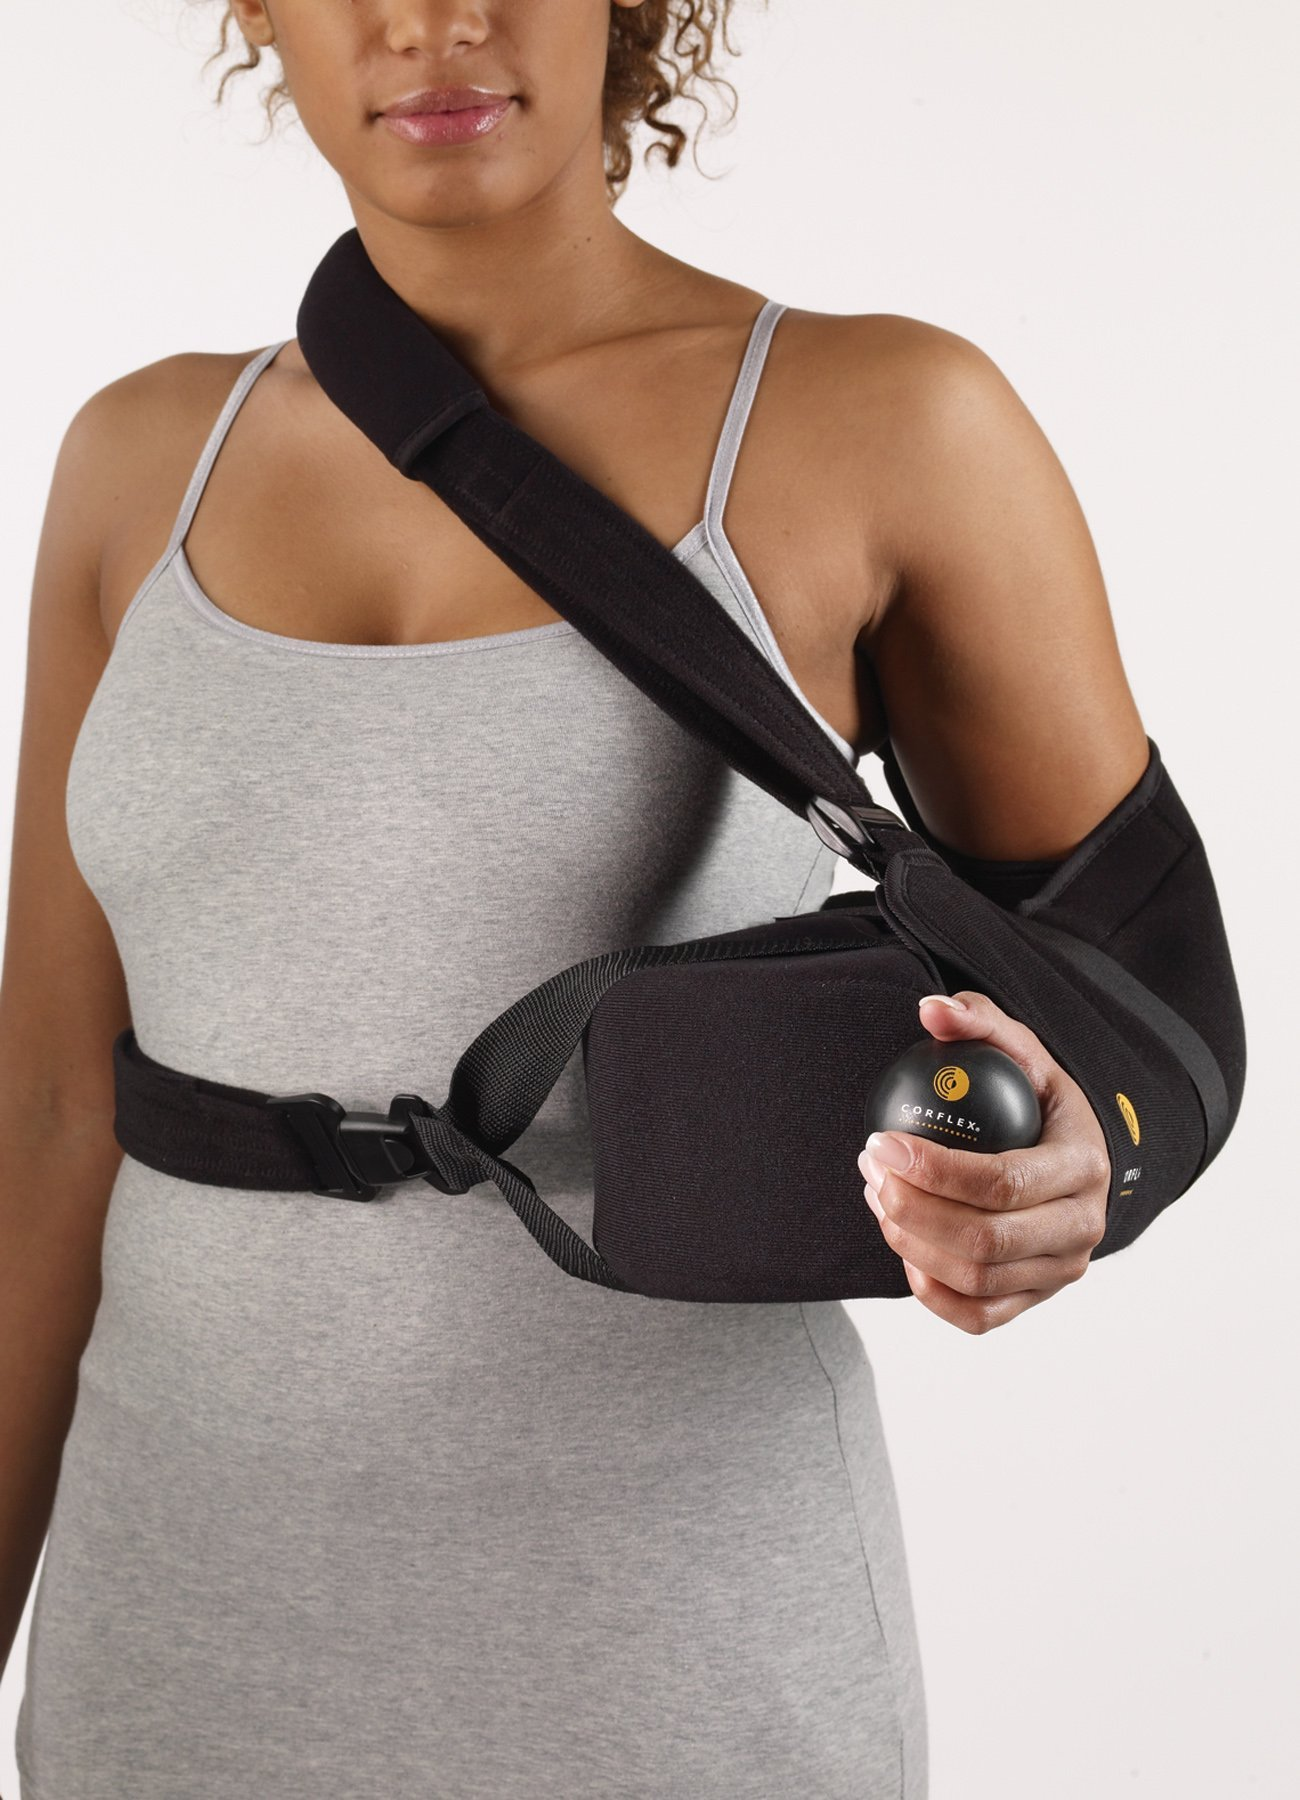 corflex ultra shoulder abduction pillow w sling small